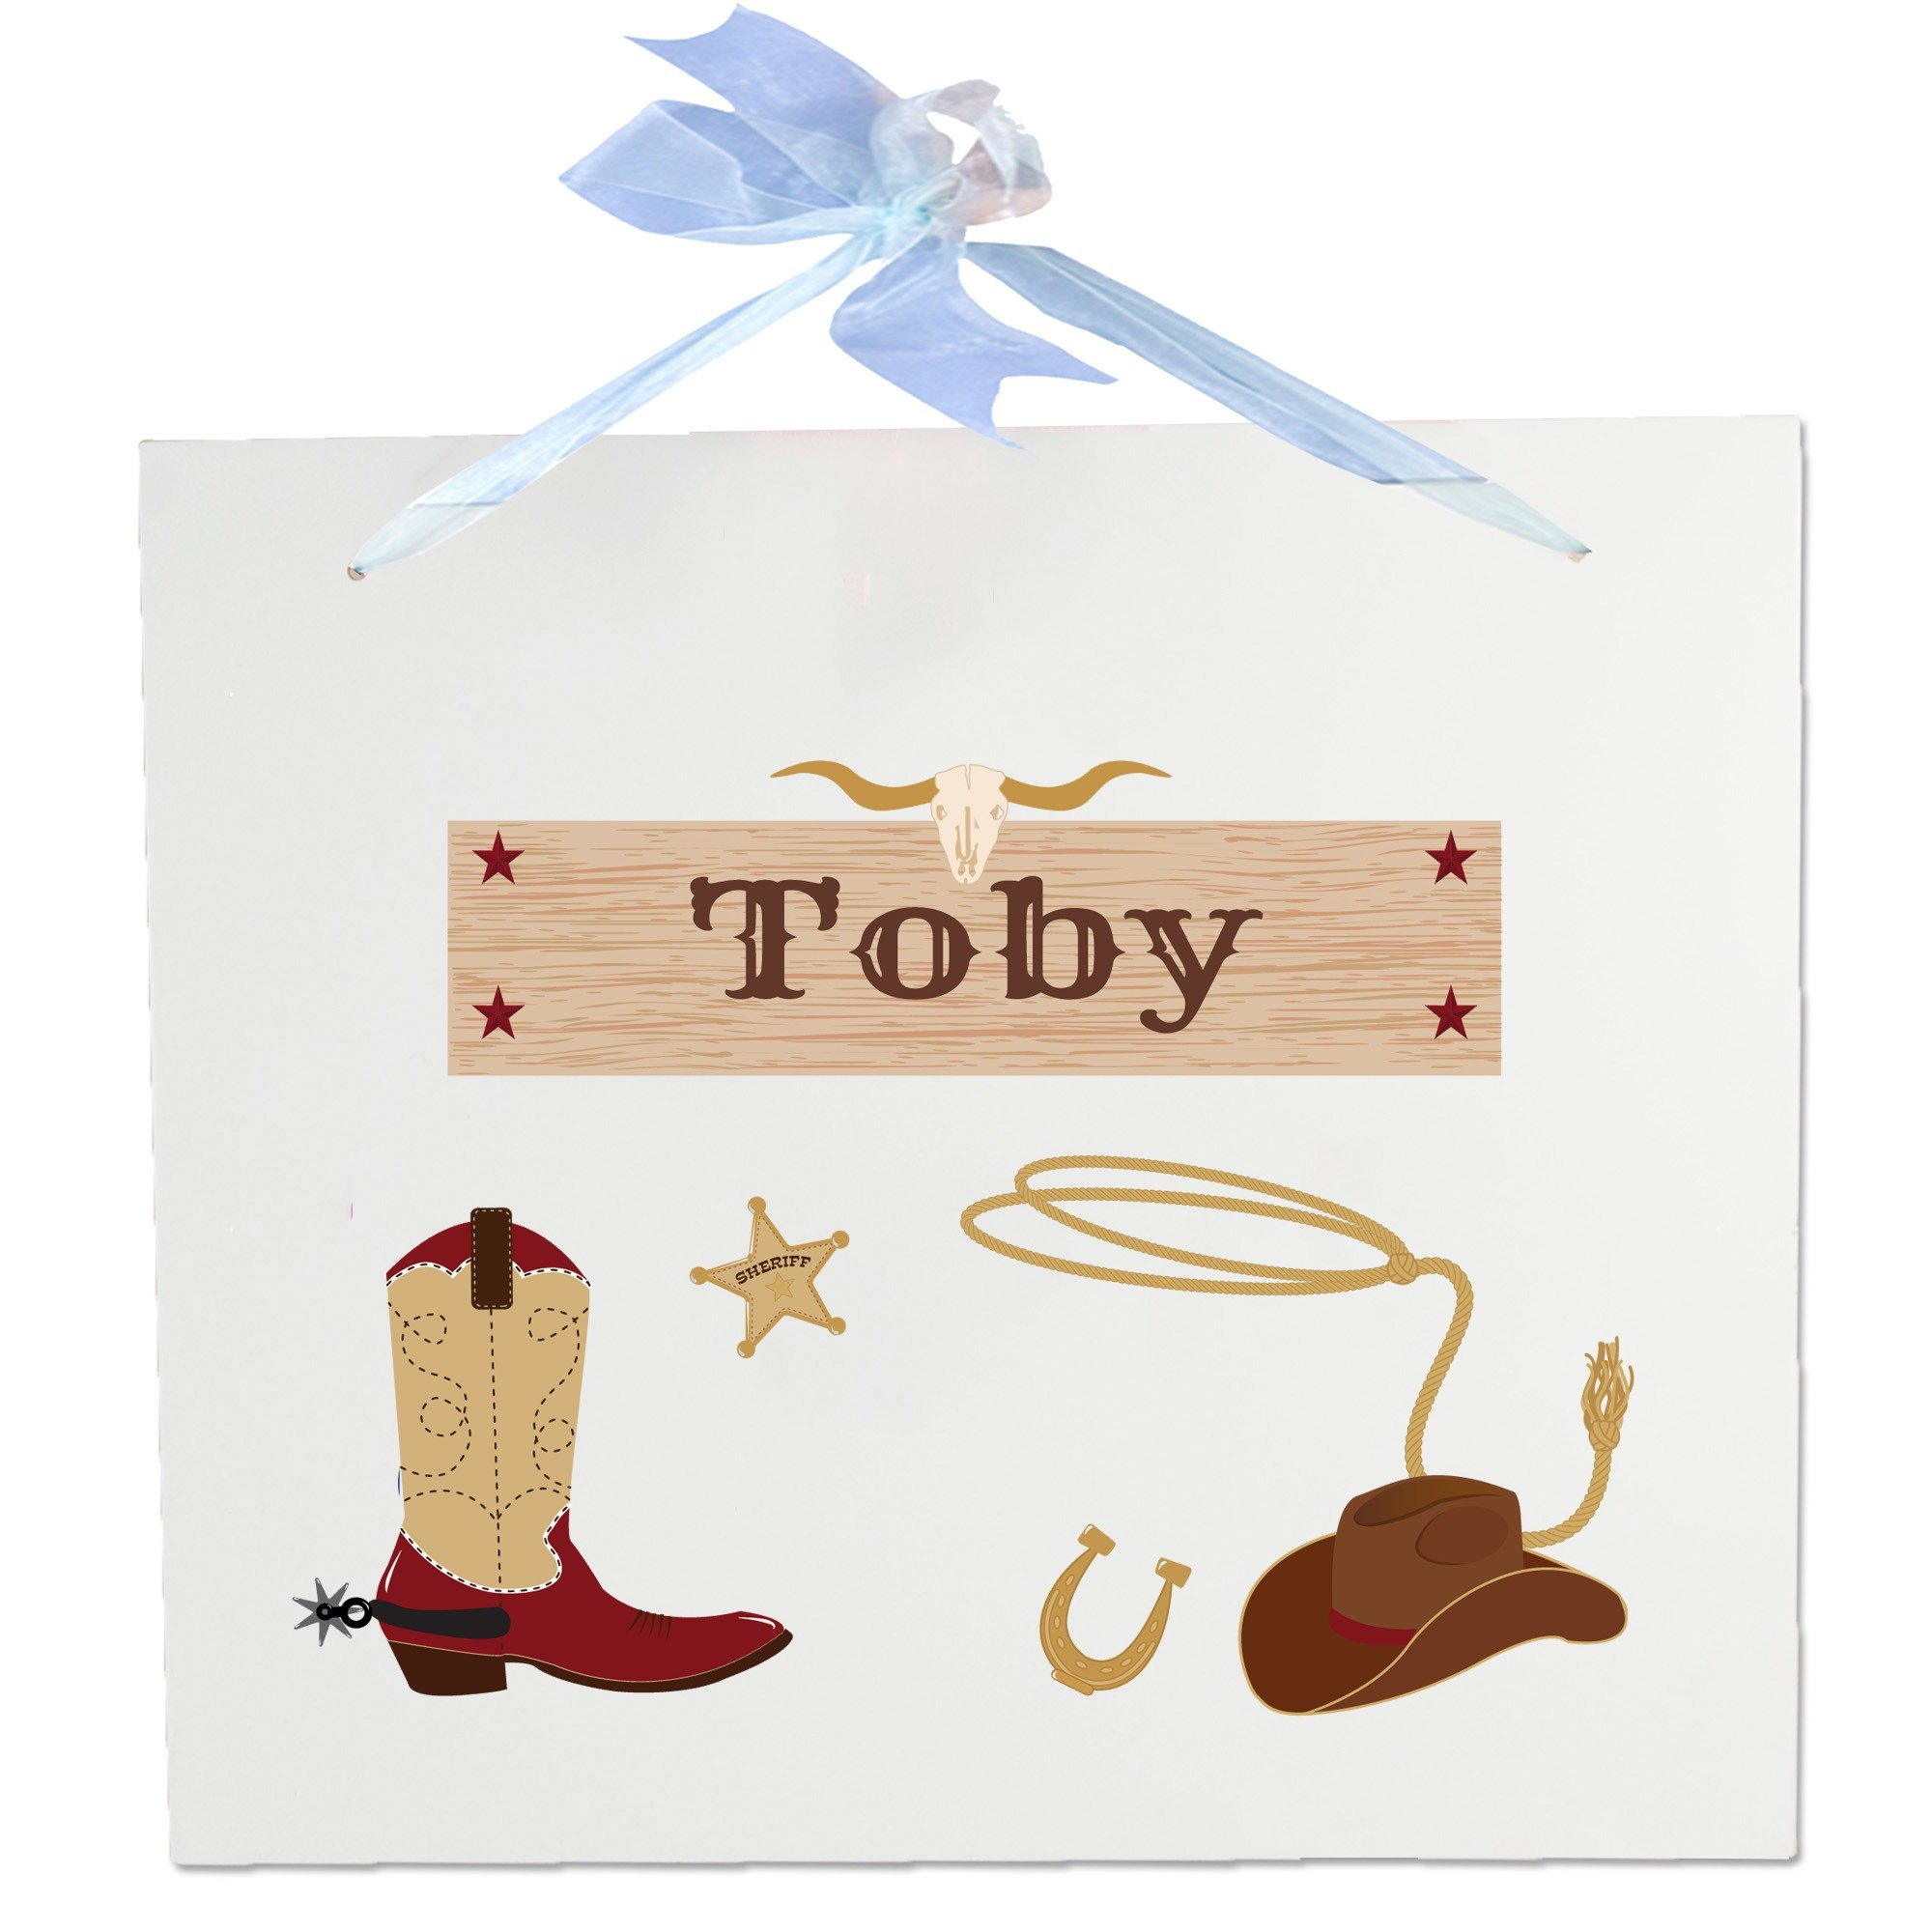 Personalized Wild West Wooden Wall Hanger With Blue Ribbon